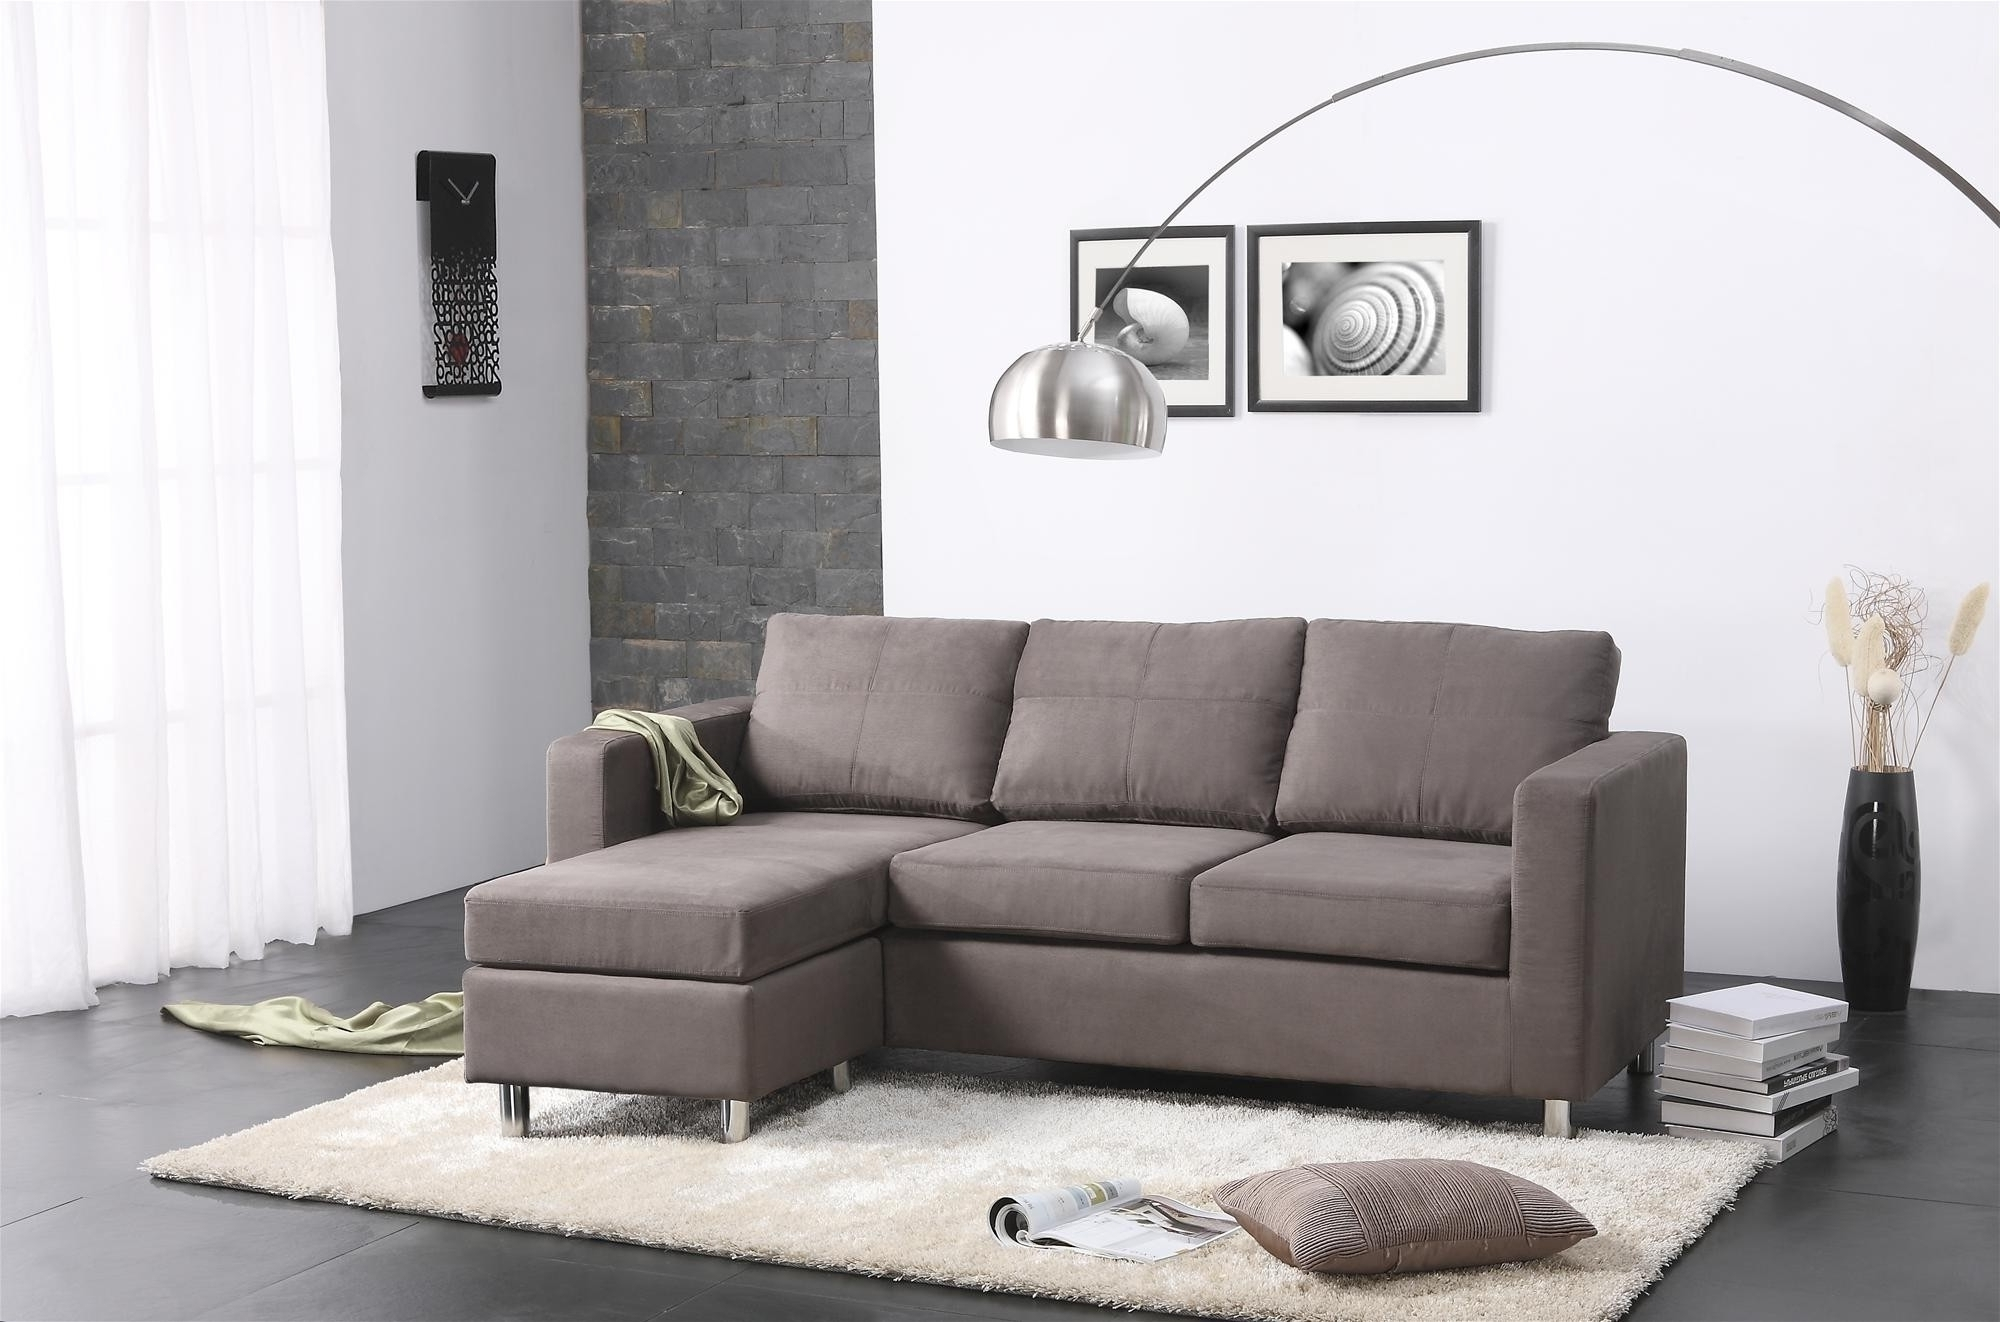 Trendy Sectional Sofas For Condos For Incredible Condo Sectional Sofa – Mediasupload (View 11 of 15)